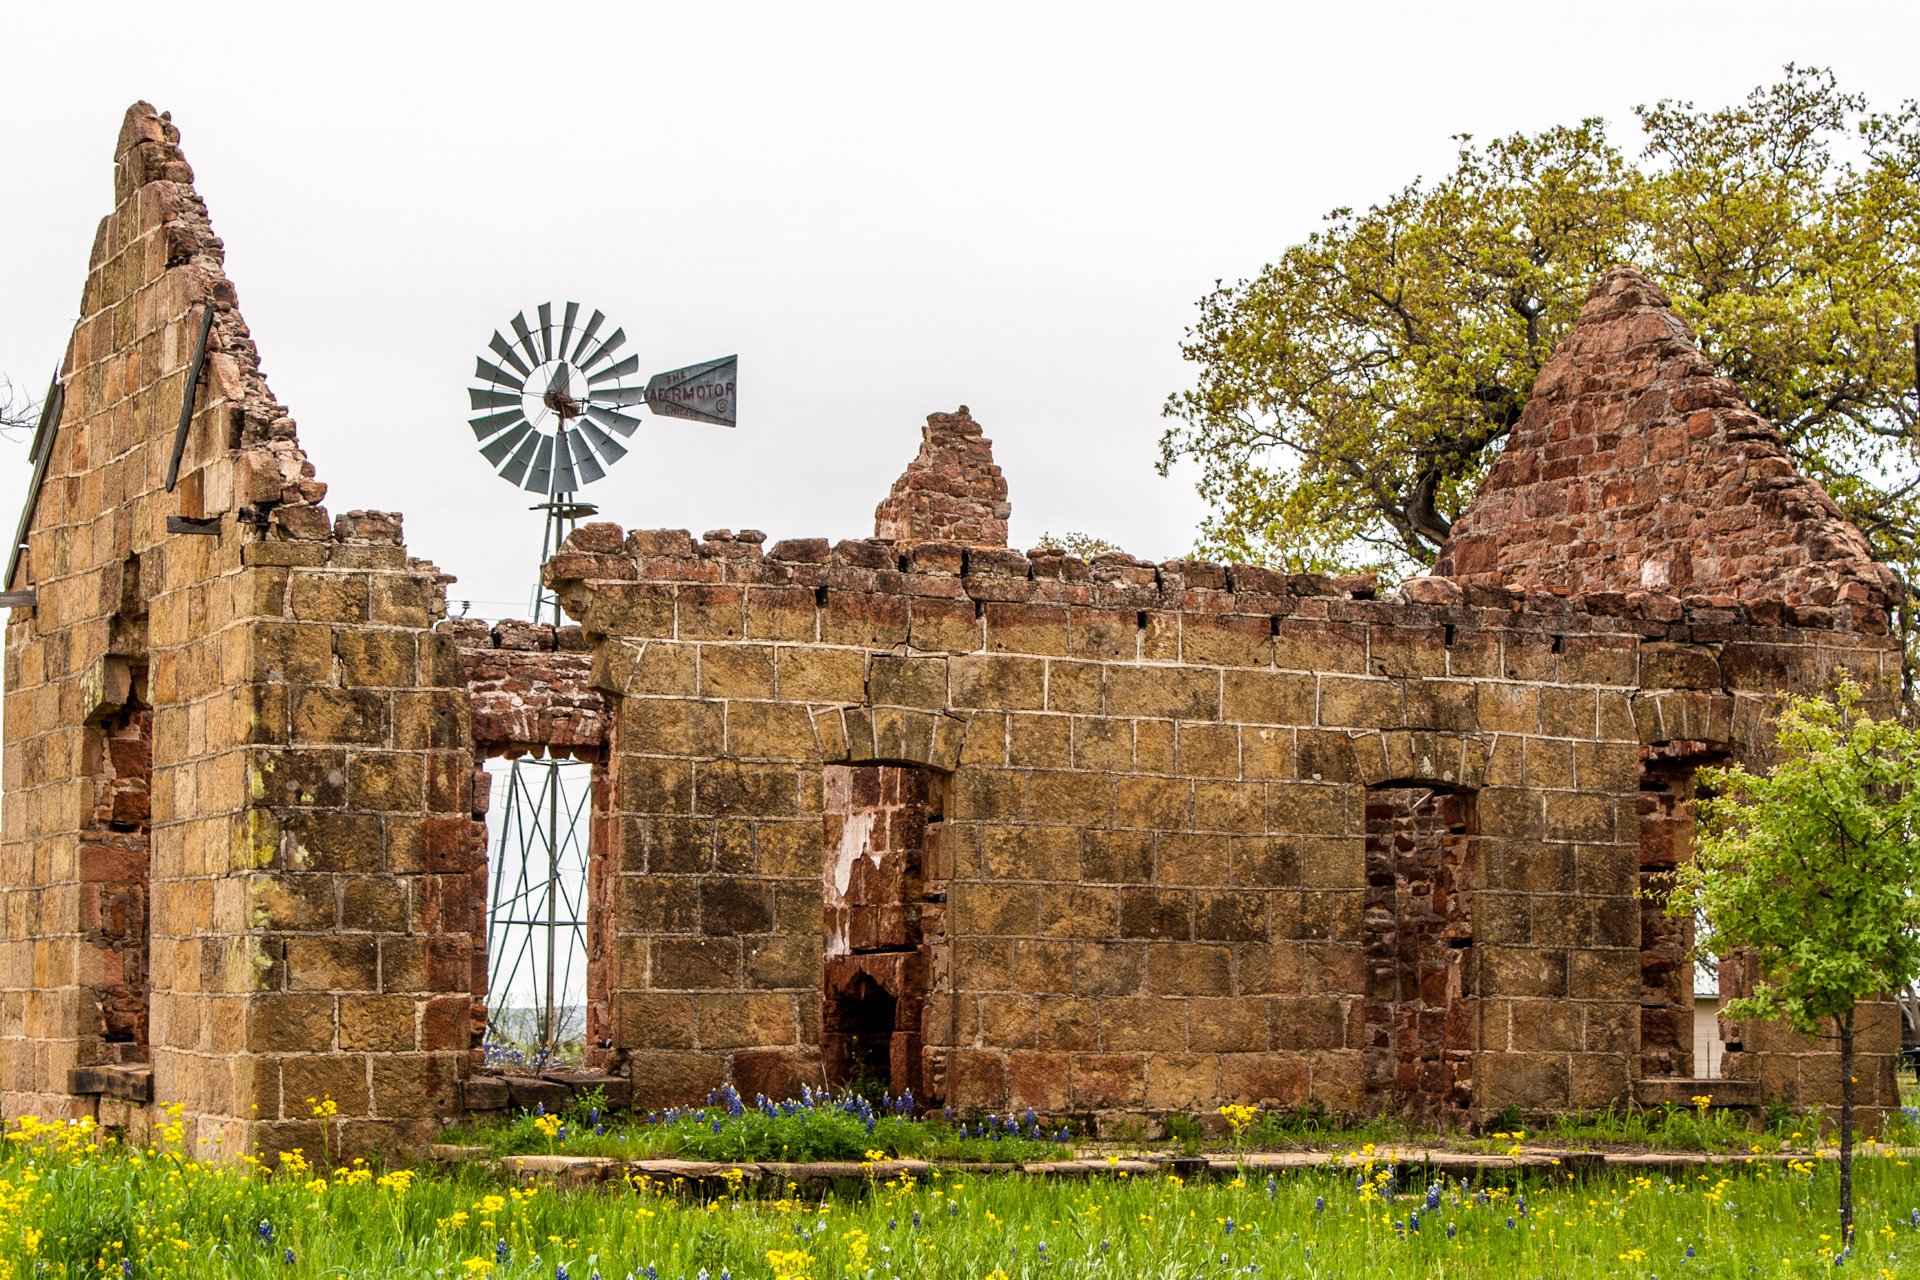 Pontotoc, Texas - A Stone Ruin With Bluebonnets (angle close)